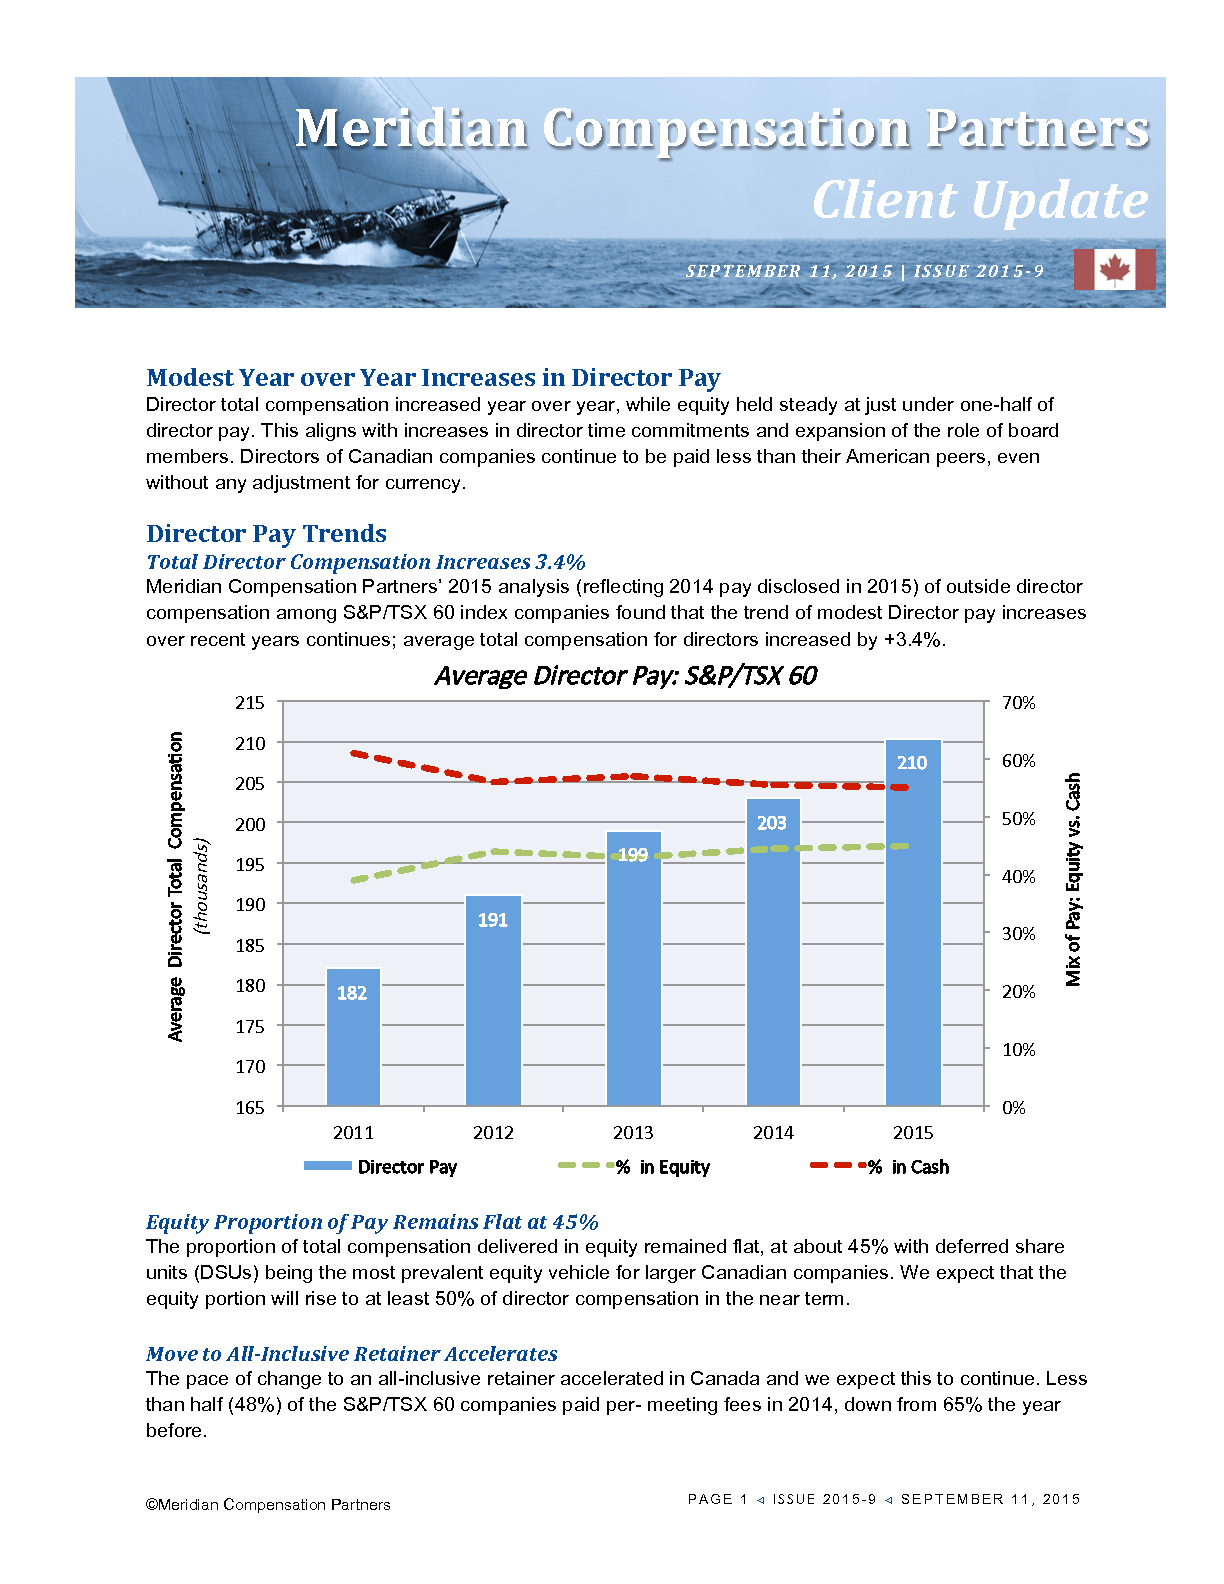 Modest Year over Year Increases in Canadian Director Pay (PDF)